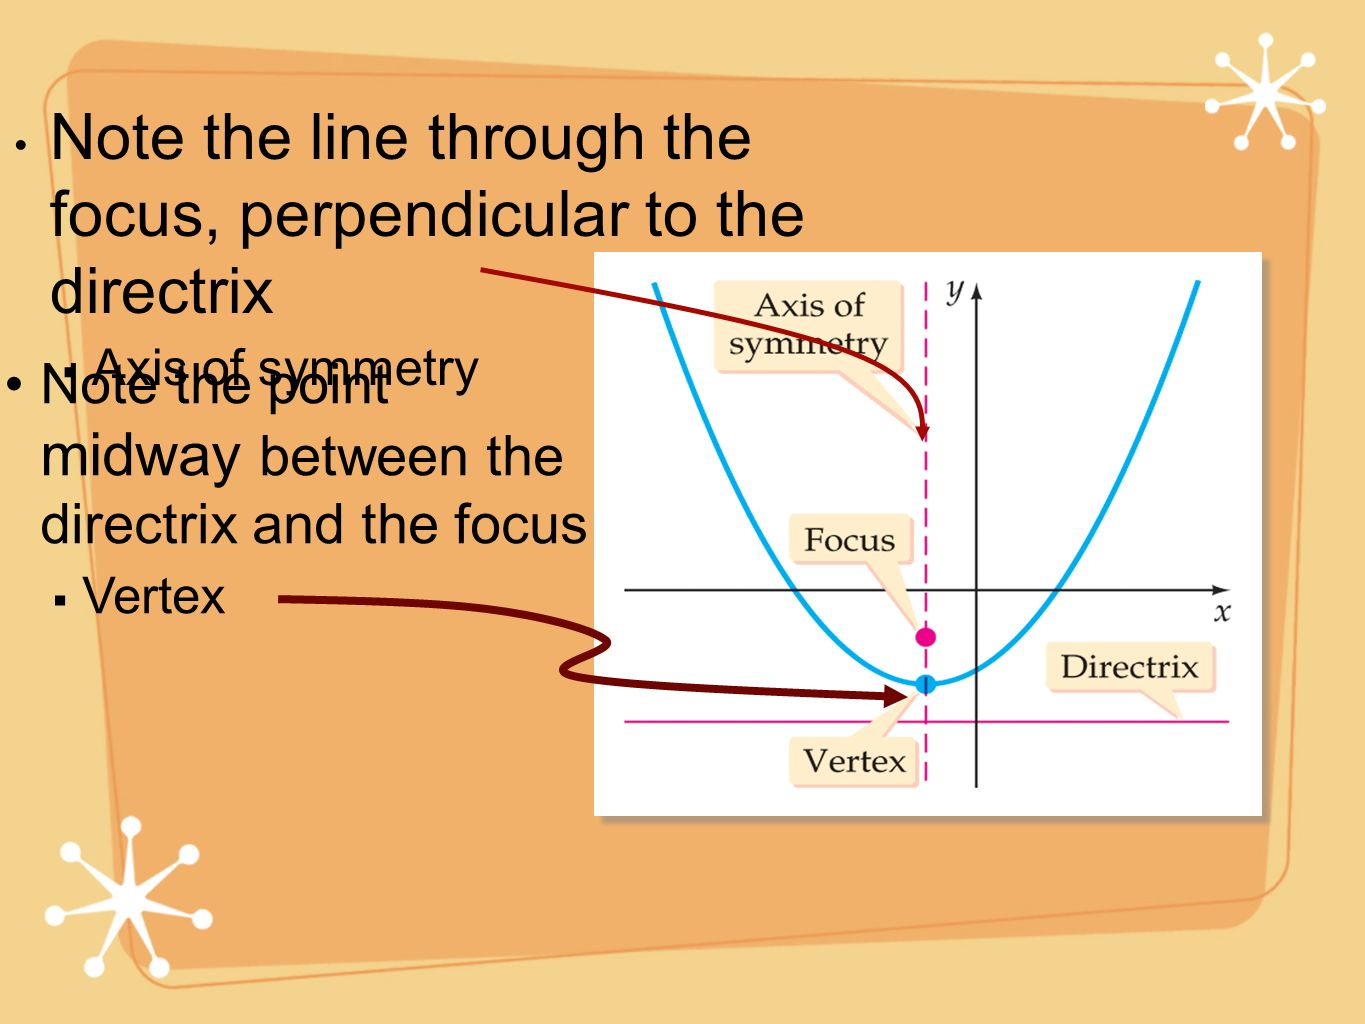 Note the line through the focus, perpendicular to the directrix